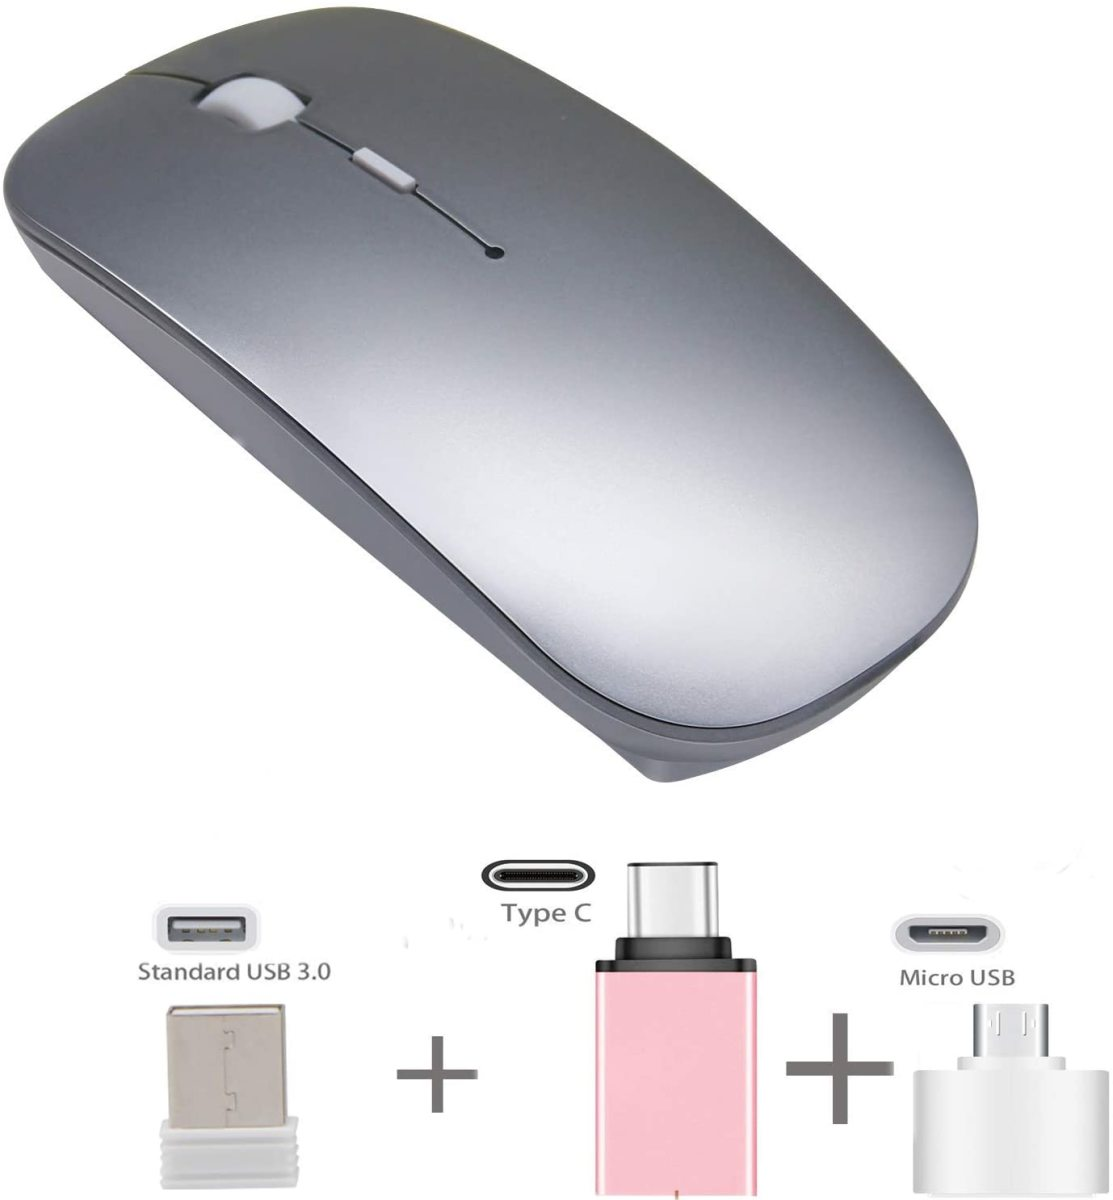 The Azmall 2.4GHz Slim Optical Rechargeable Wireless Mouse.